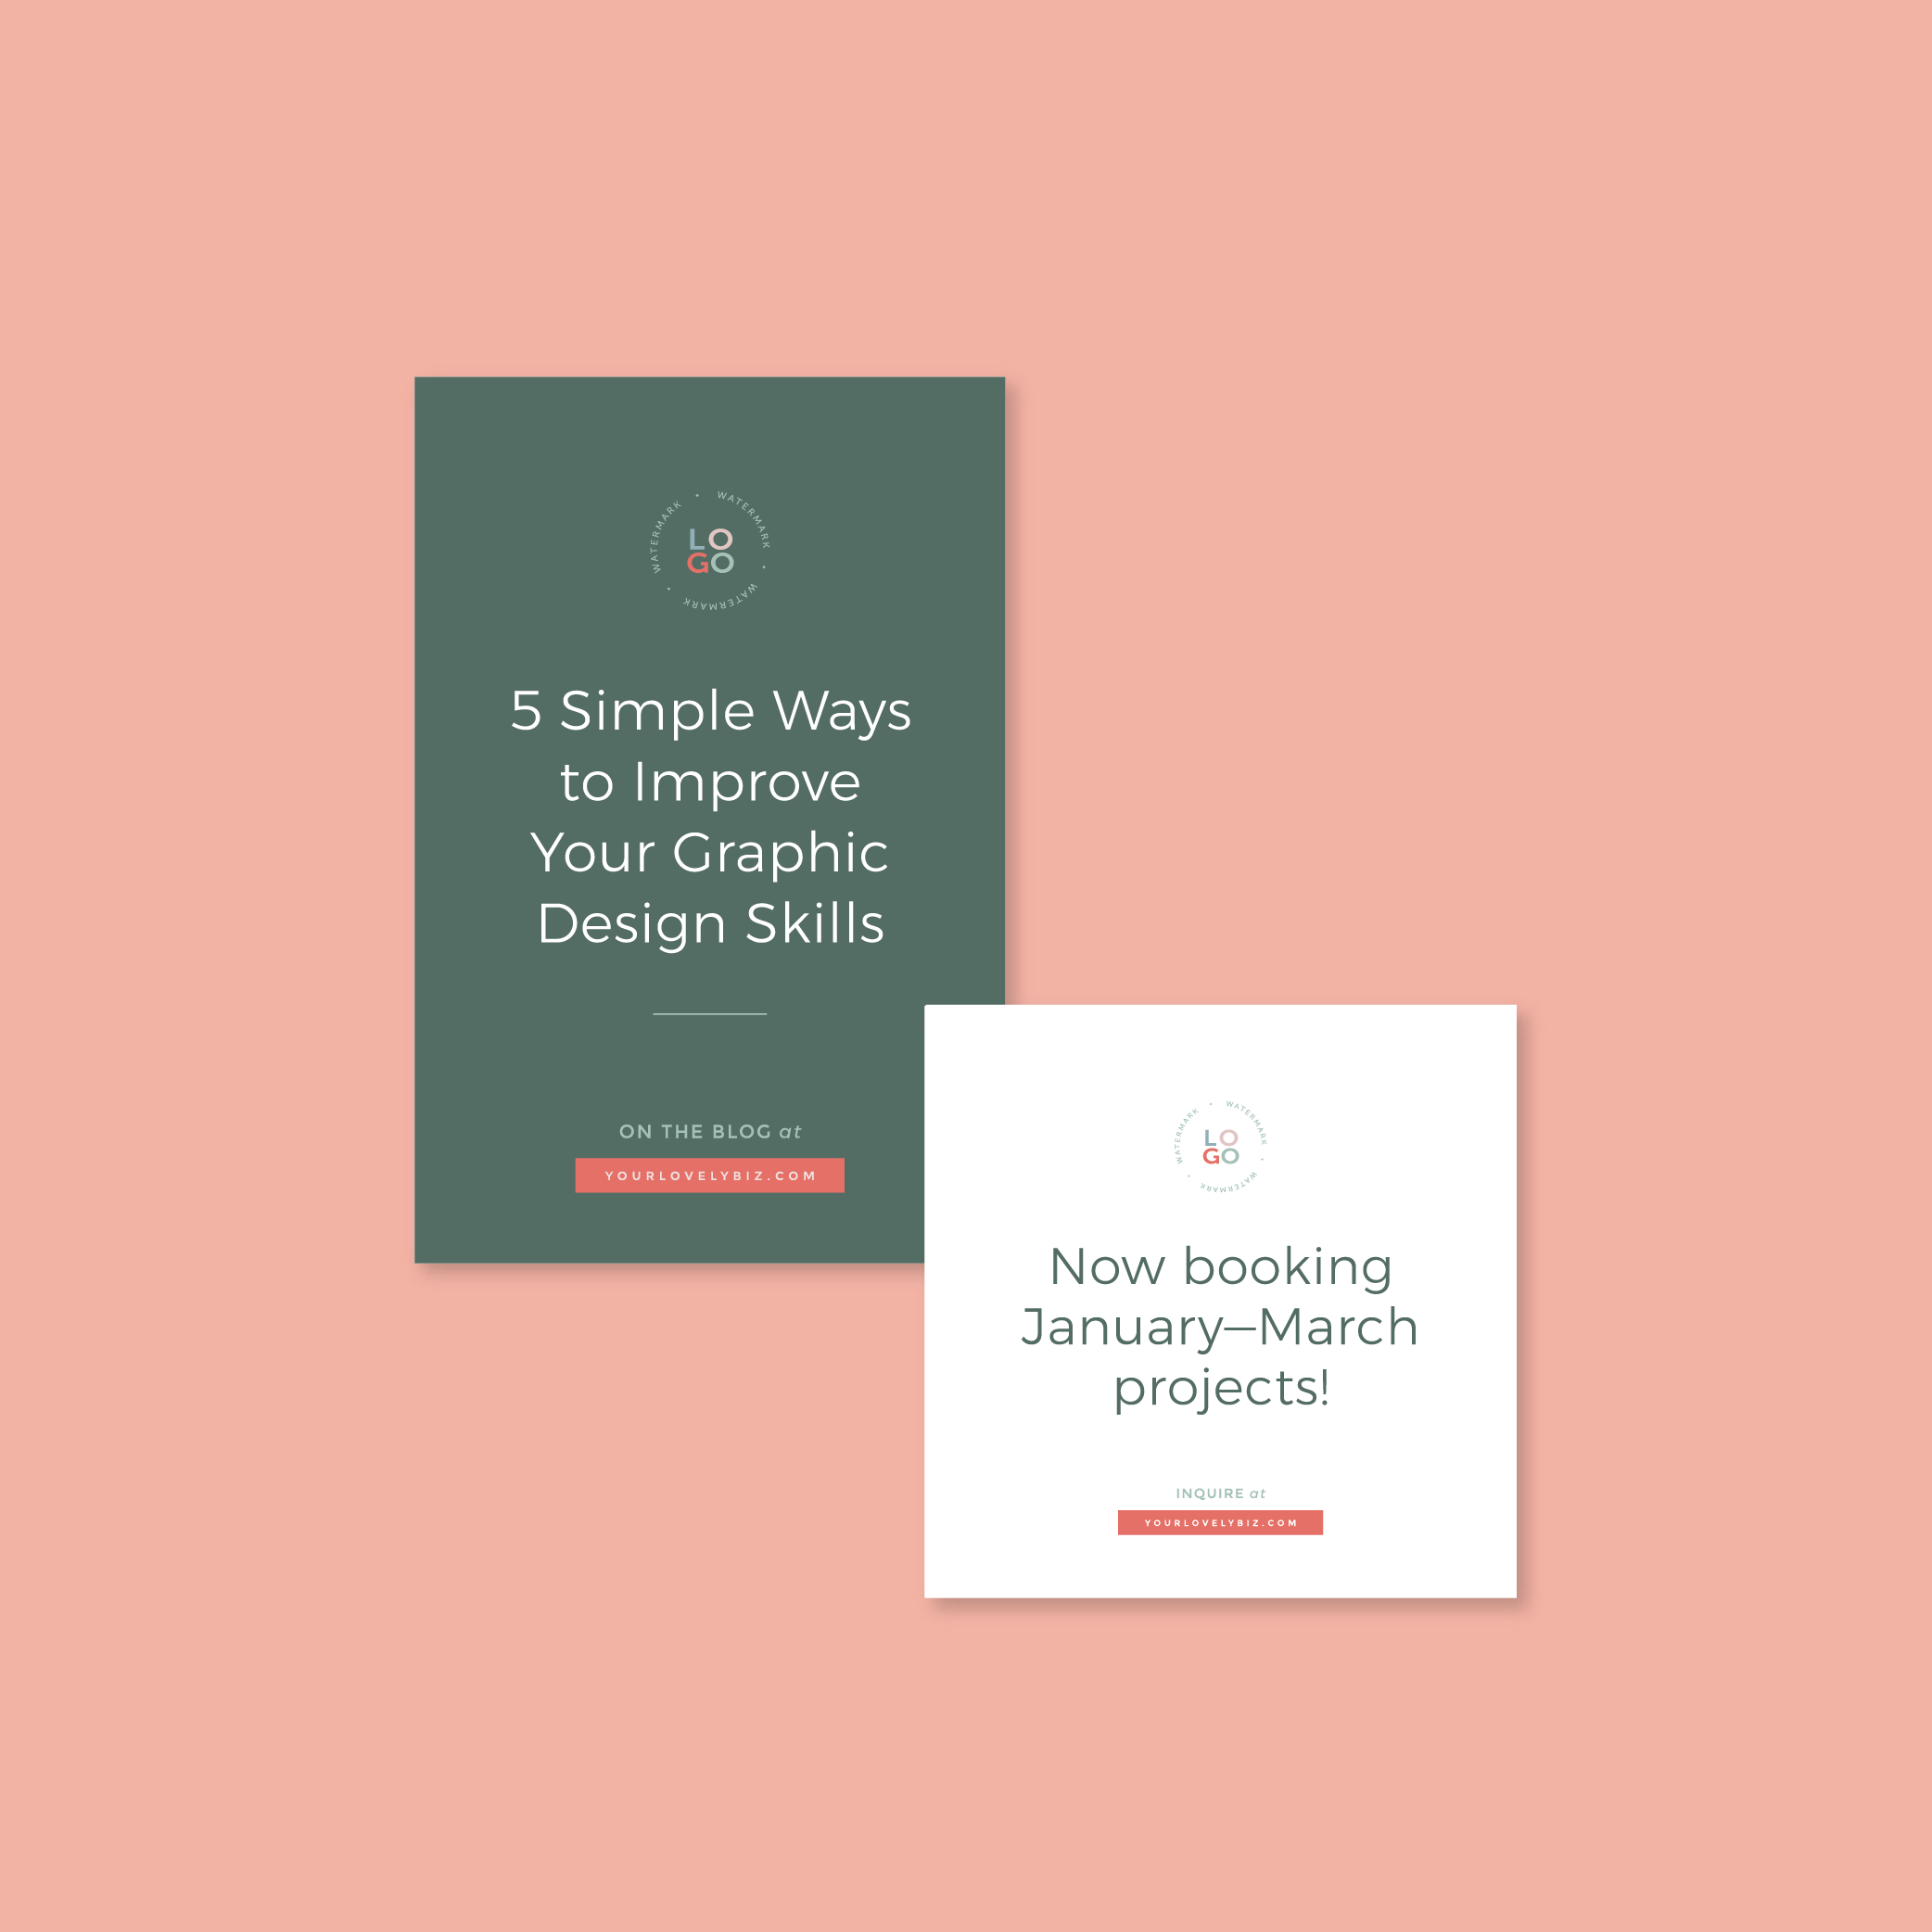 DesignTemplateBundle-Graphics-25.png